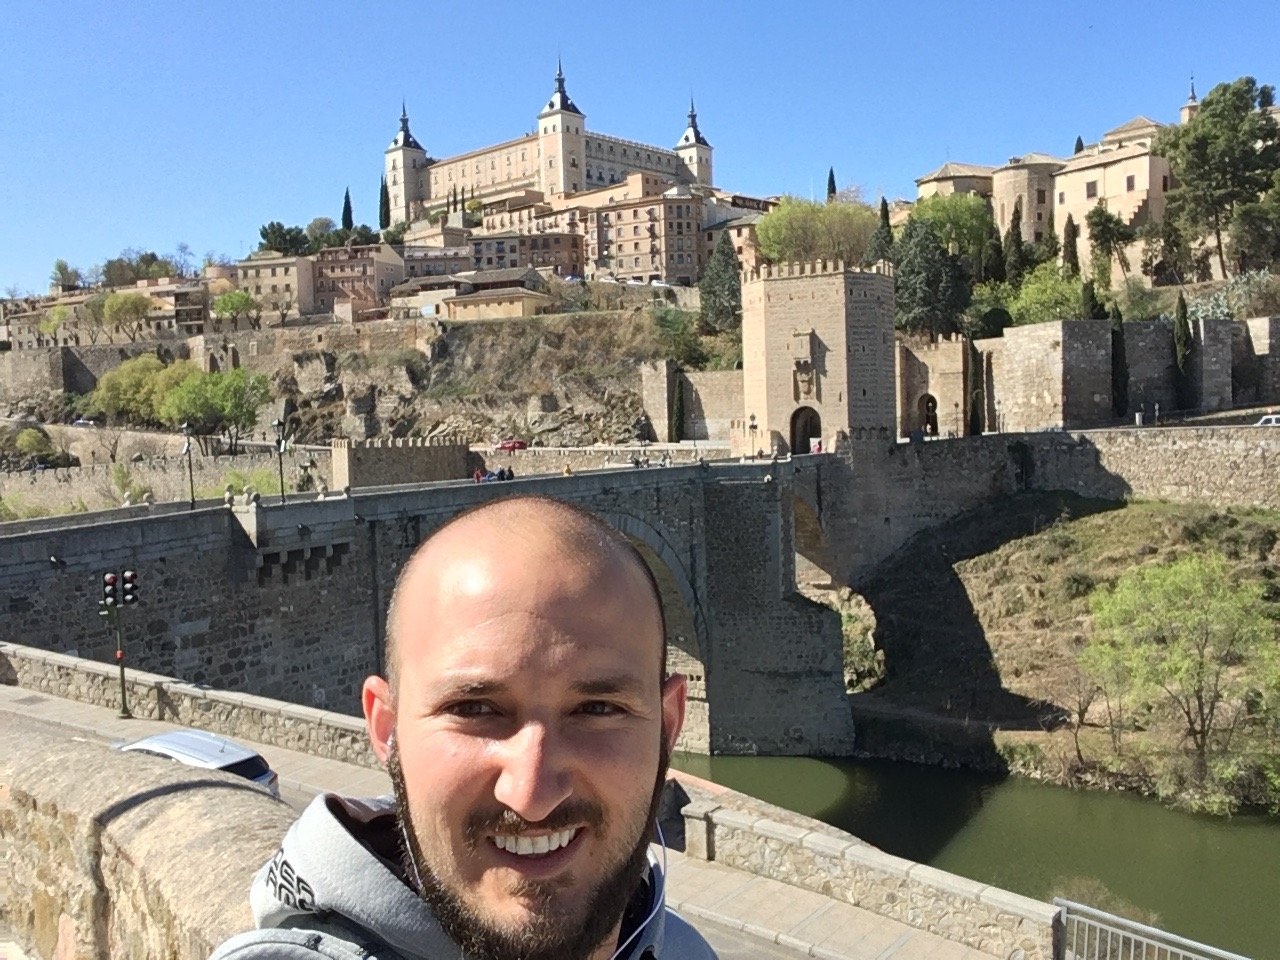 Ryan in Spain before going to Police Academy